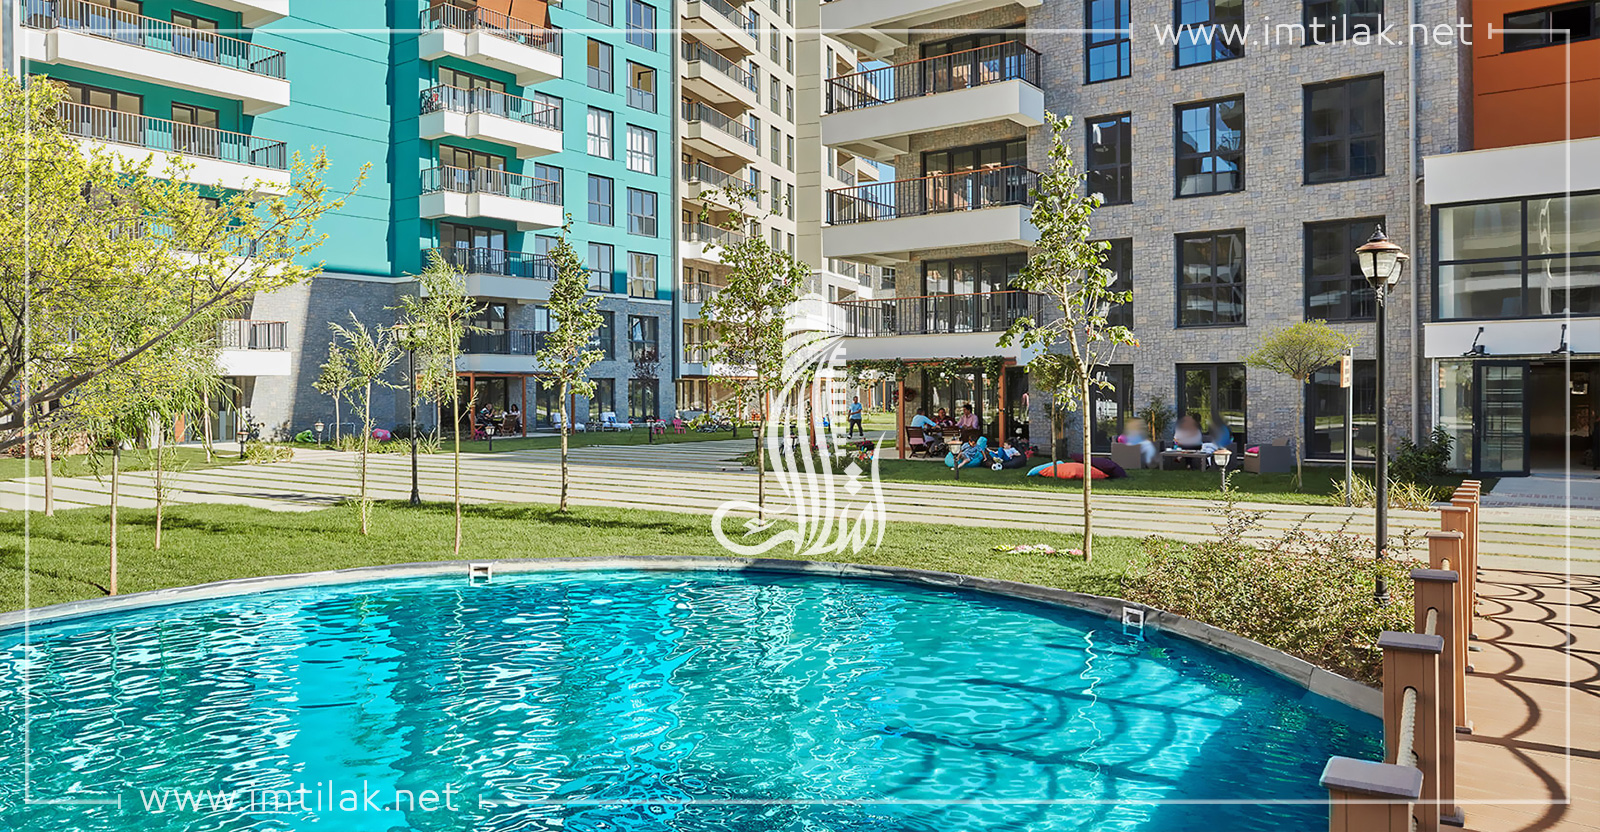 Property For Sale In Istanbul Asian side - Aydos Park Project IMT - 411